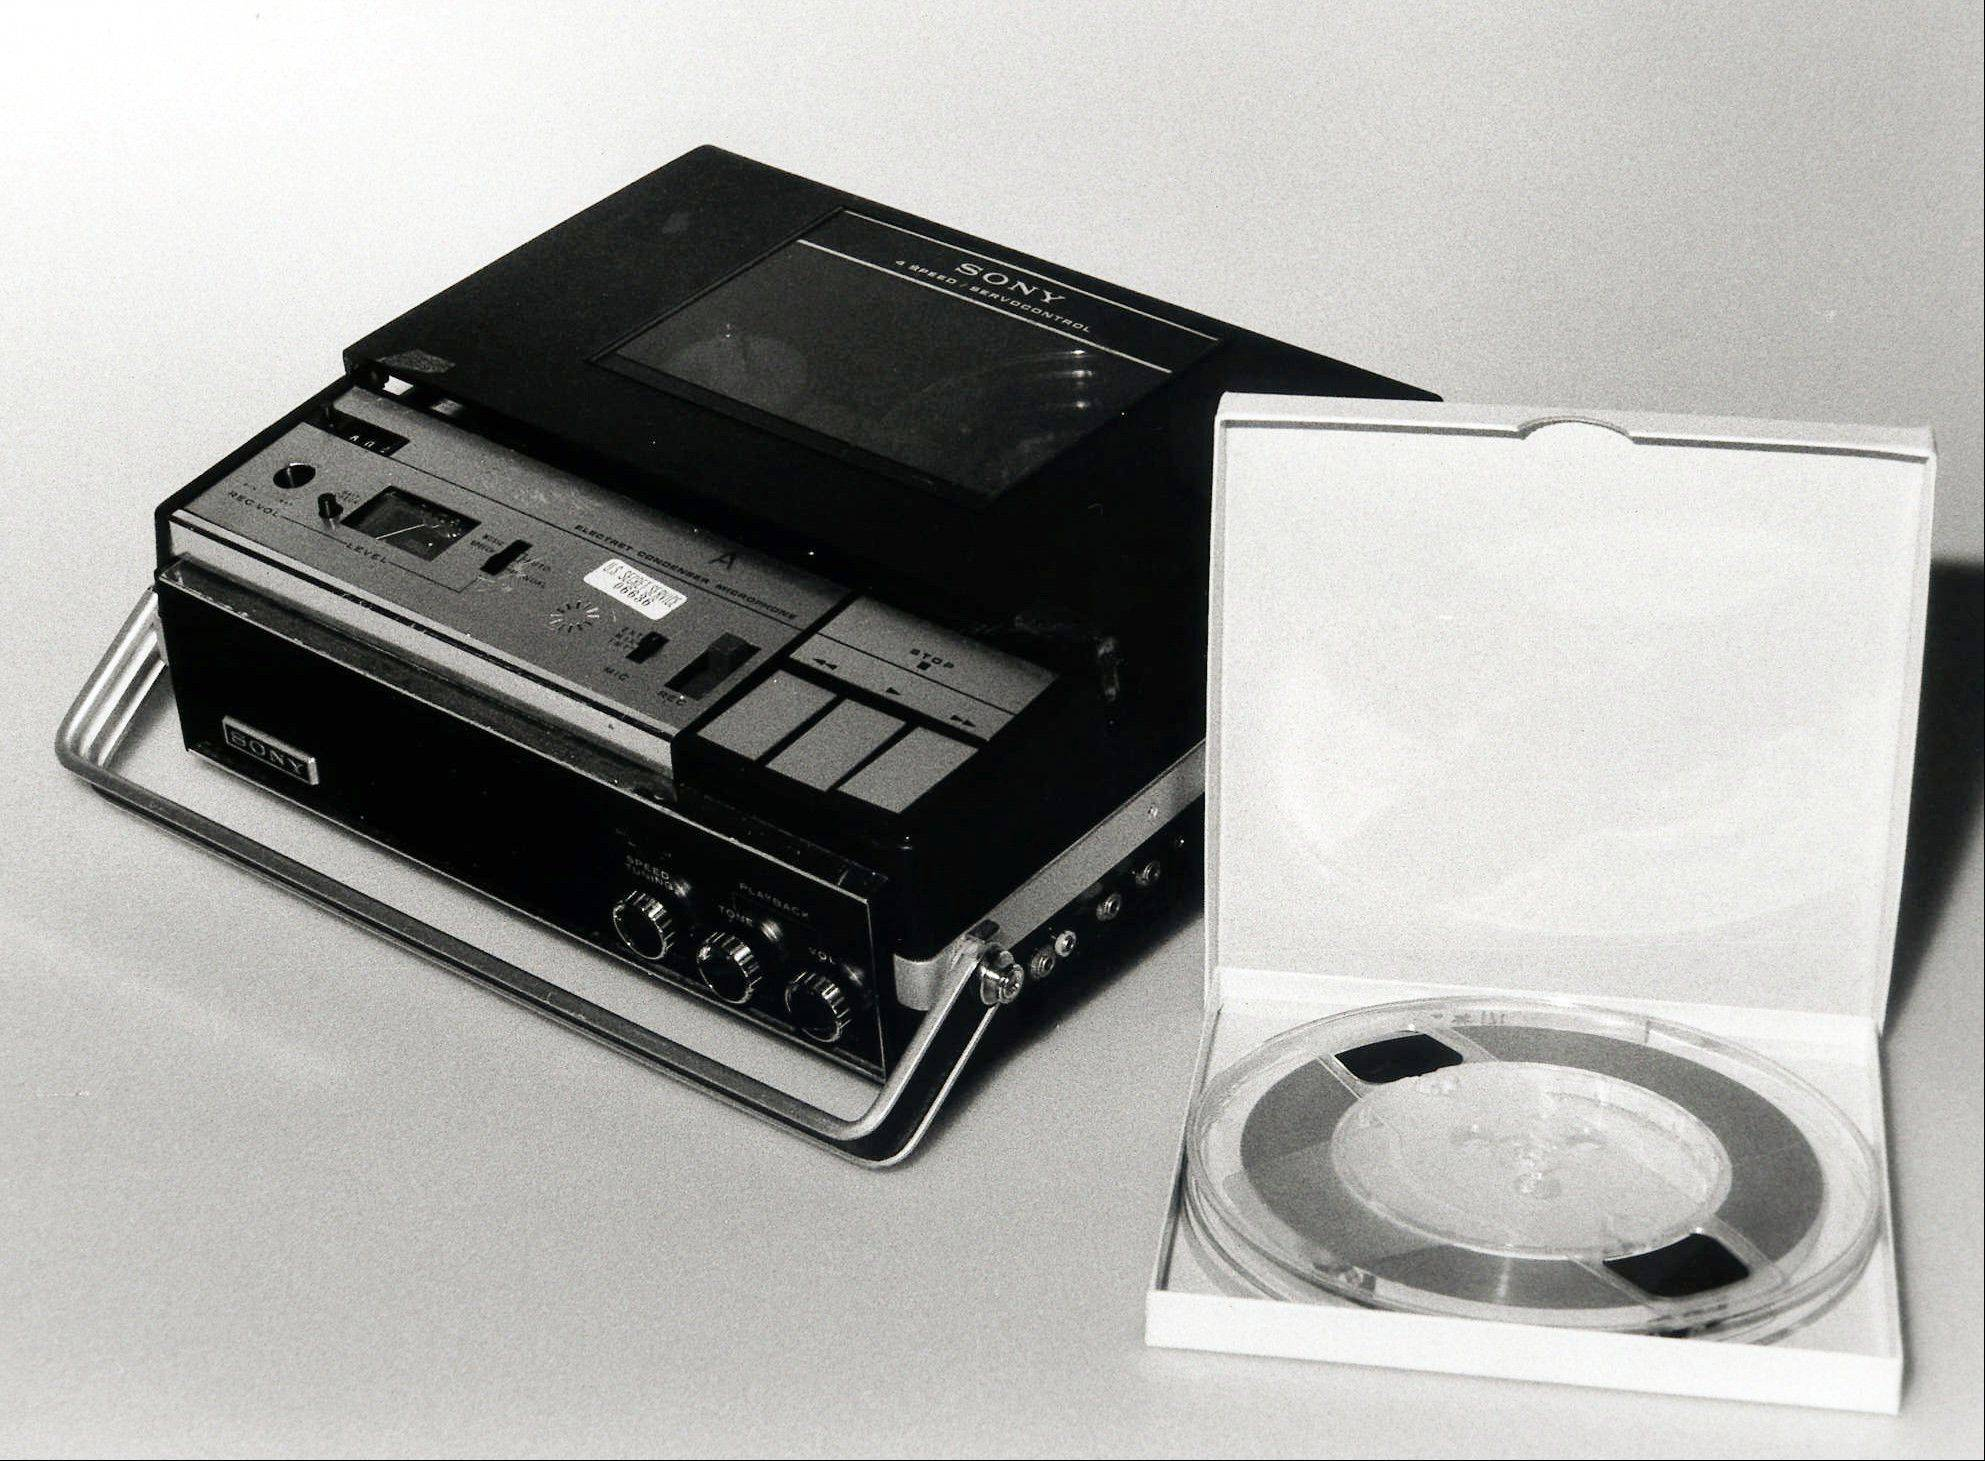 The original Nixon White House tape and original tape recorder are shown in an undated file photo from the National Archives.